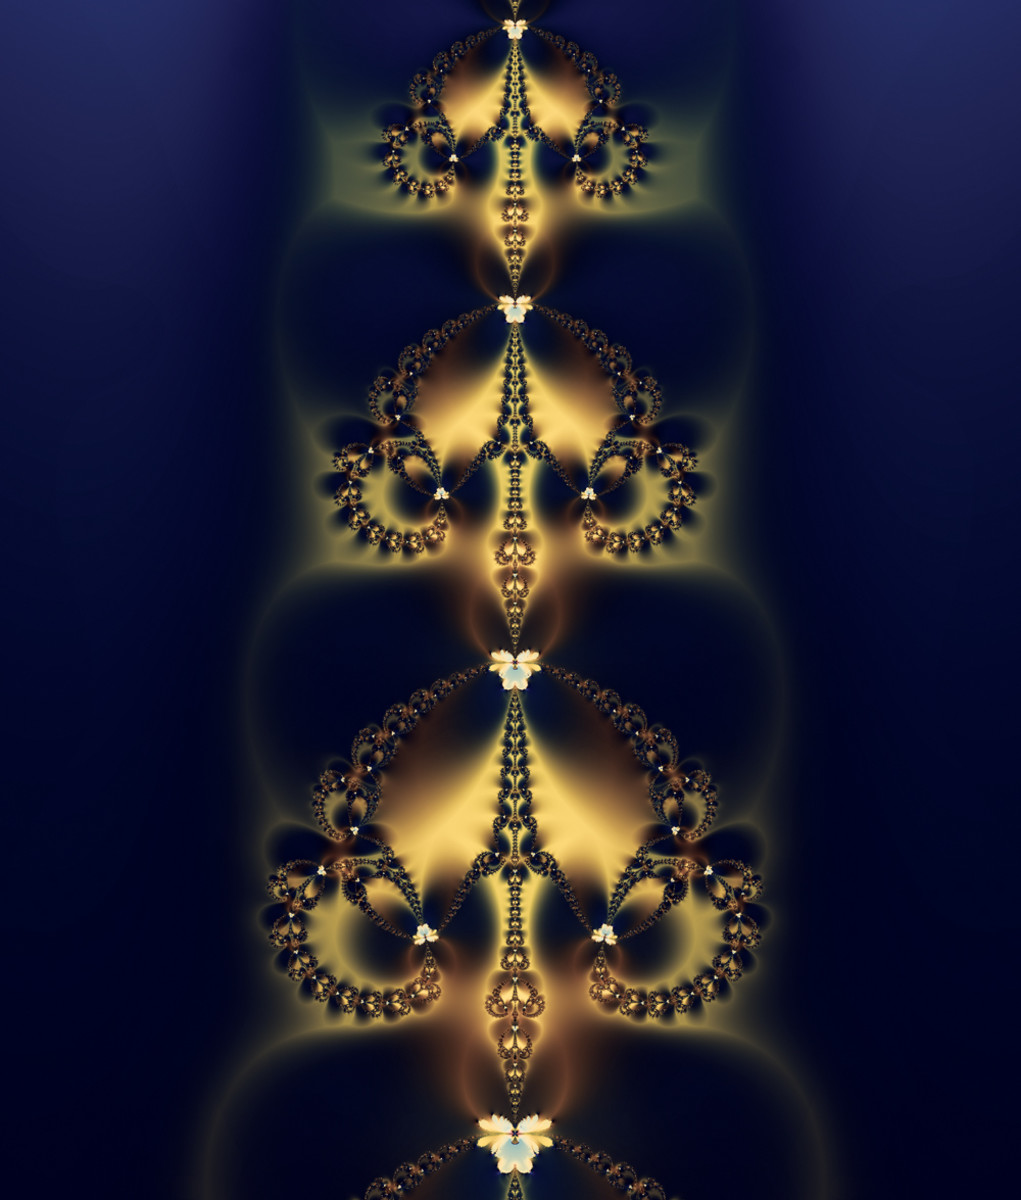 Create Fractal Art With Sterling2- A Video Tutorial